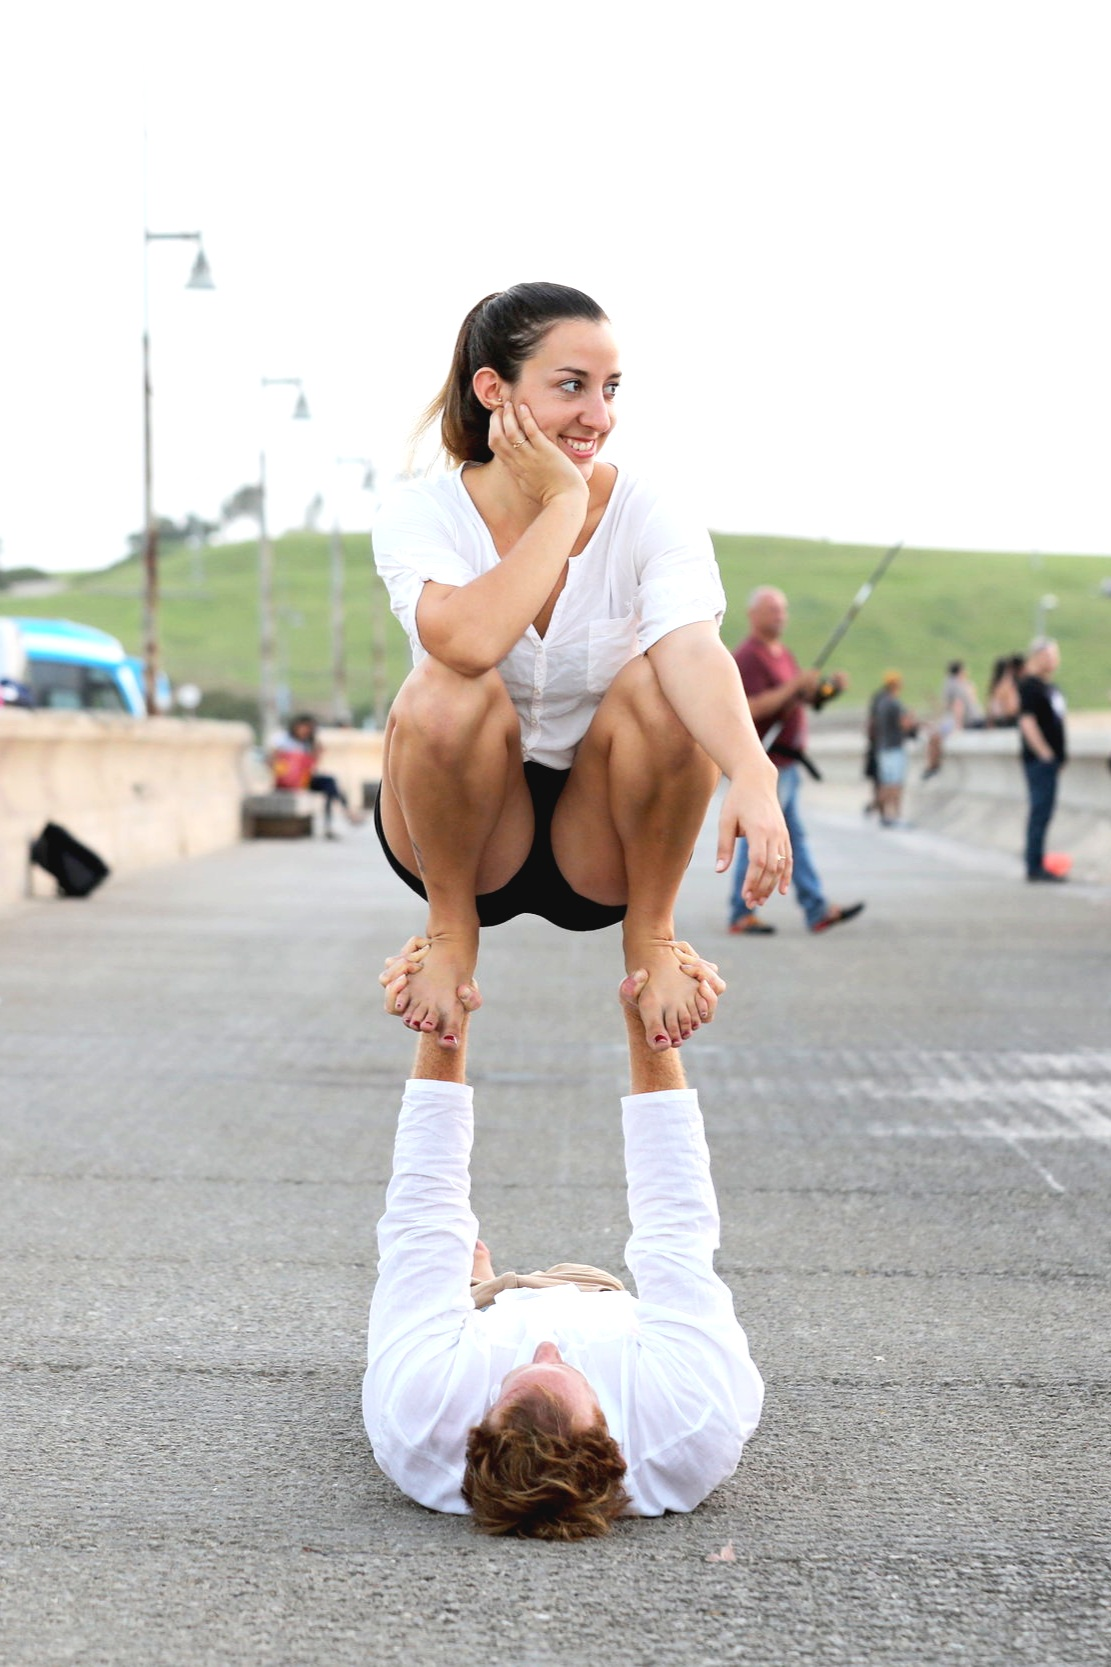 Acroyoga Festival and Acro Conventions Orin Lev Or Flying Foot to Hand